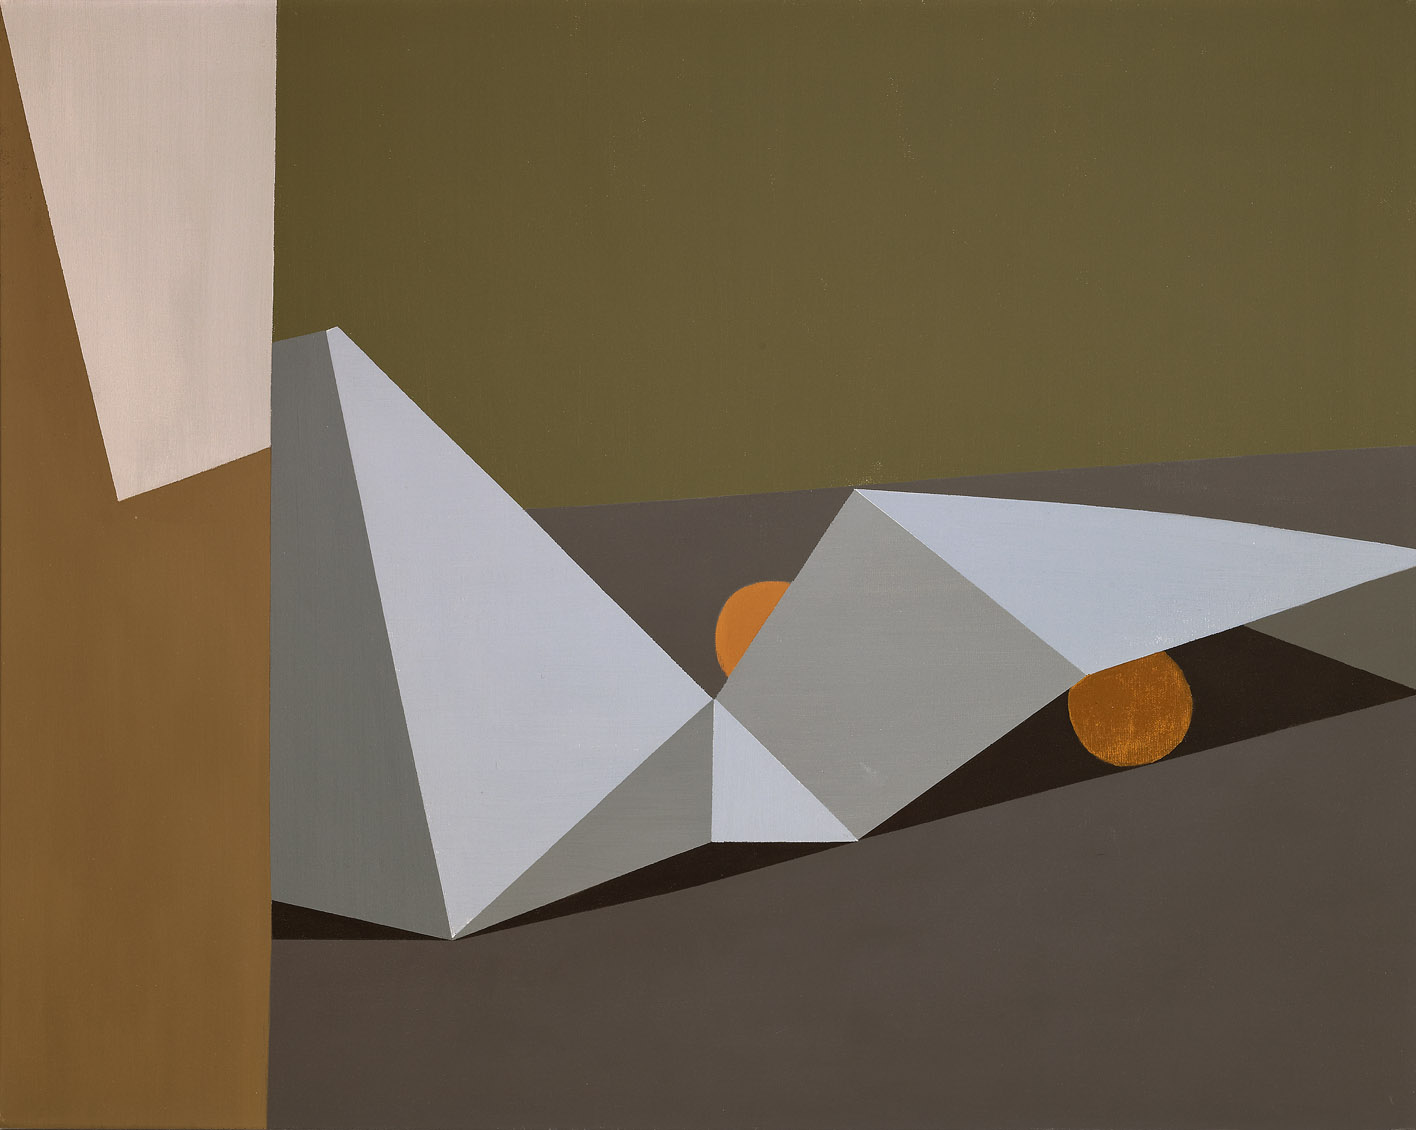 Still Life with Folded Paper , 1961 oil on canvas 24 in. x 30 inches; 60.96 x 76.2 centimeters  Long Beach Museum of Art